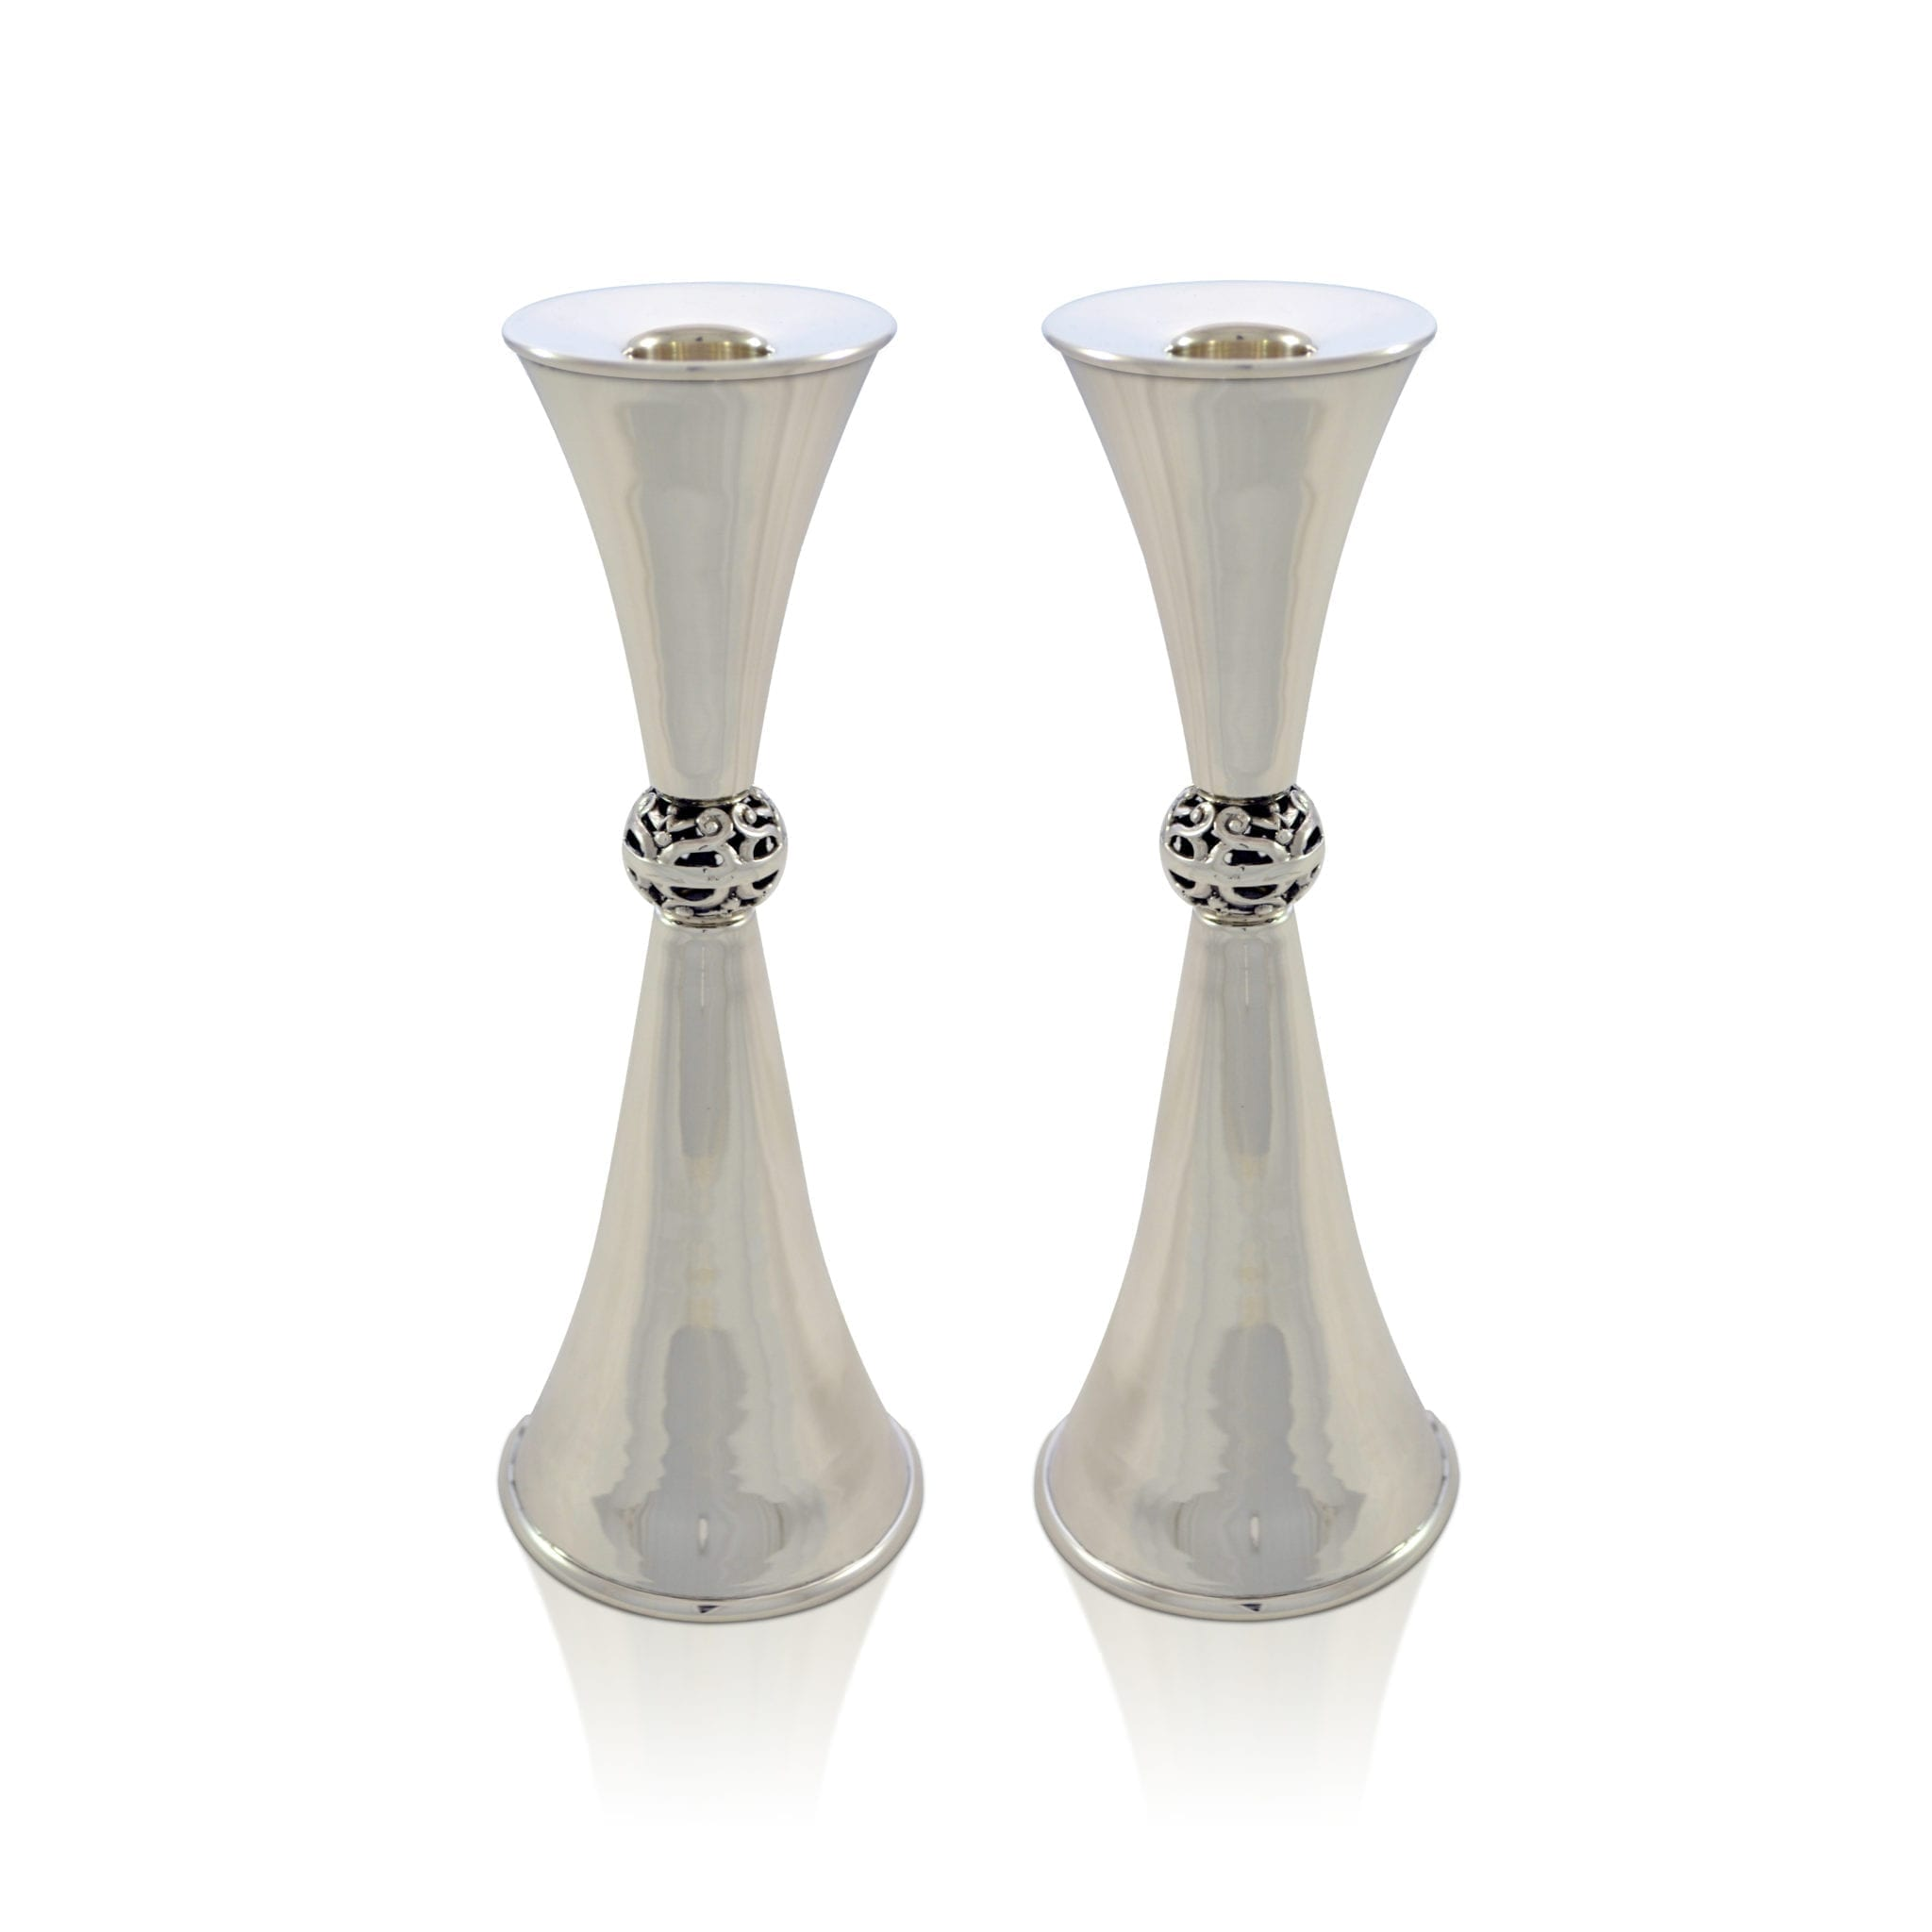 Sterling silver cone-shaped candlesticks. Shabbat Judaica made in Israel